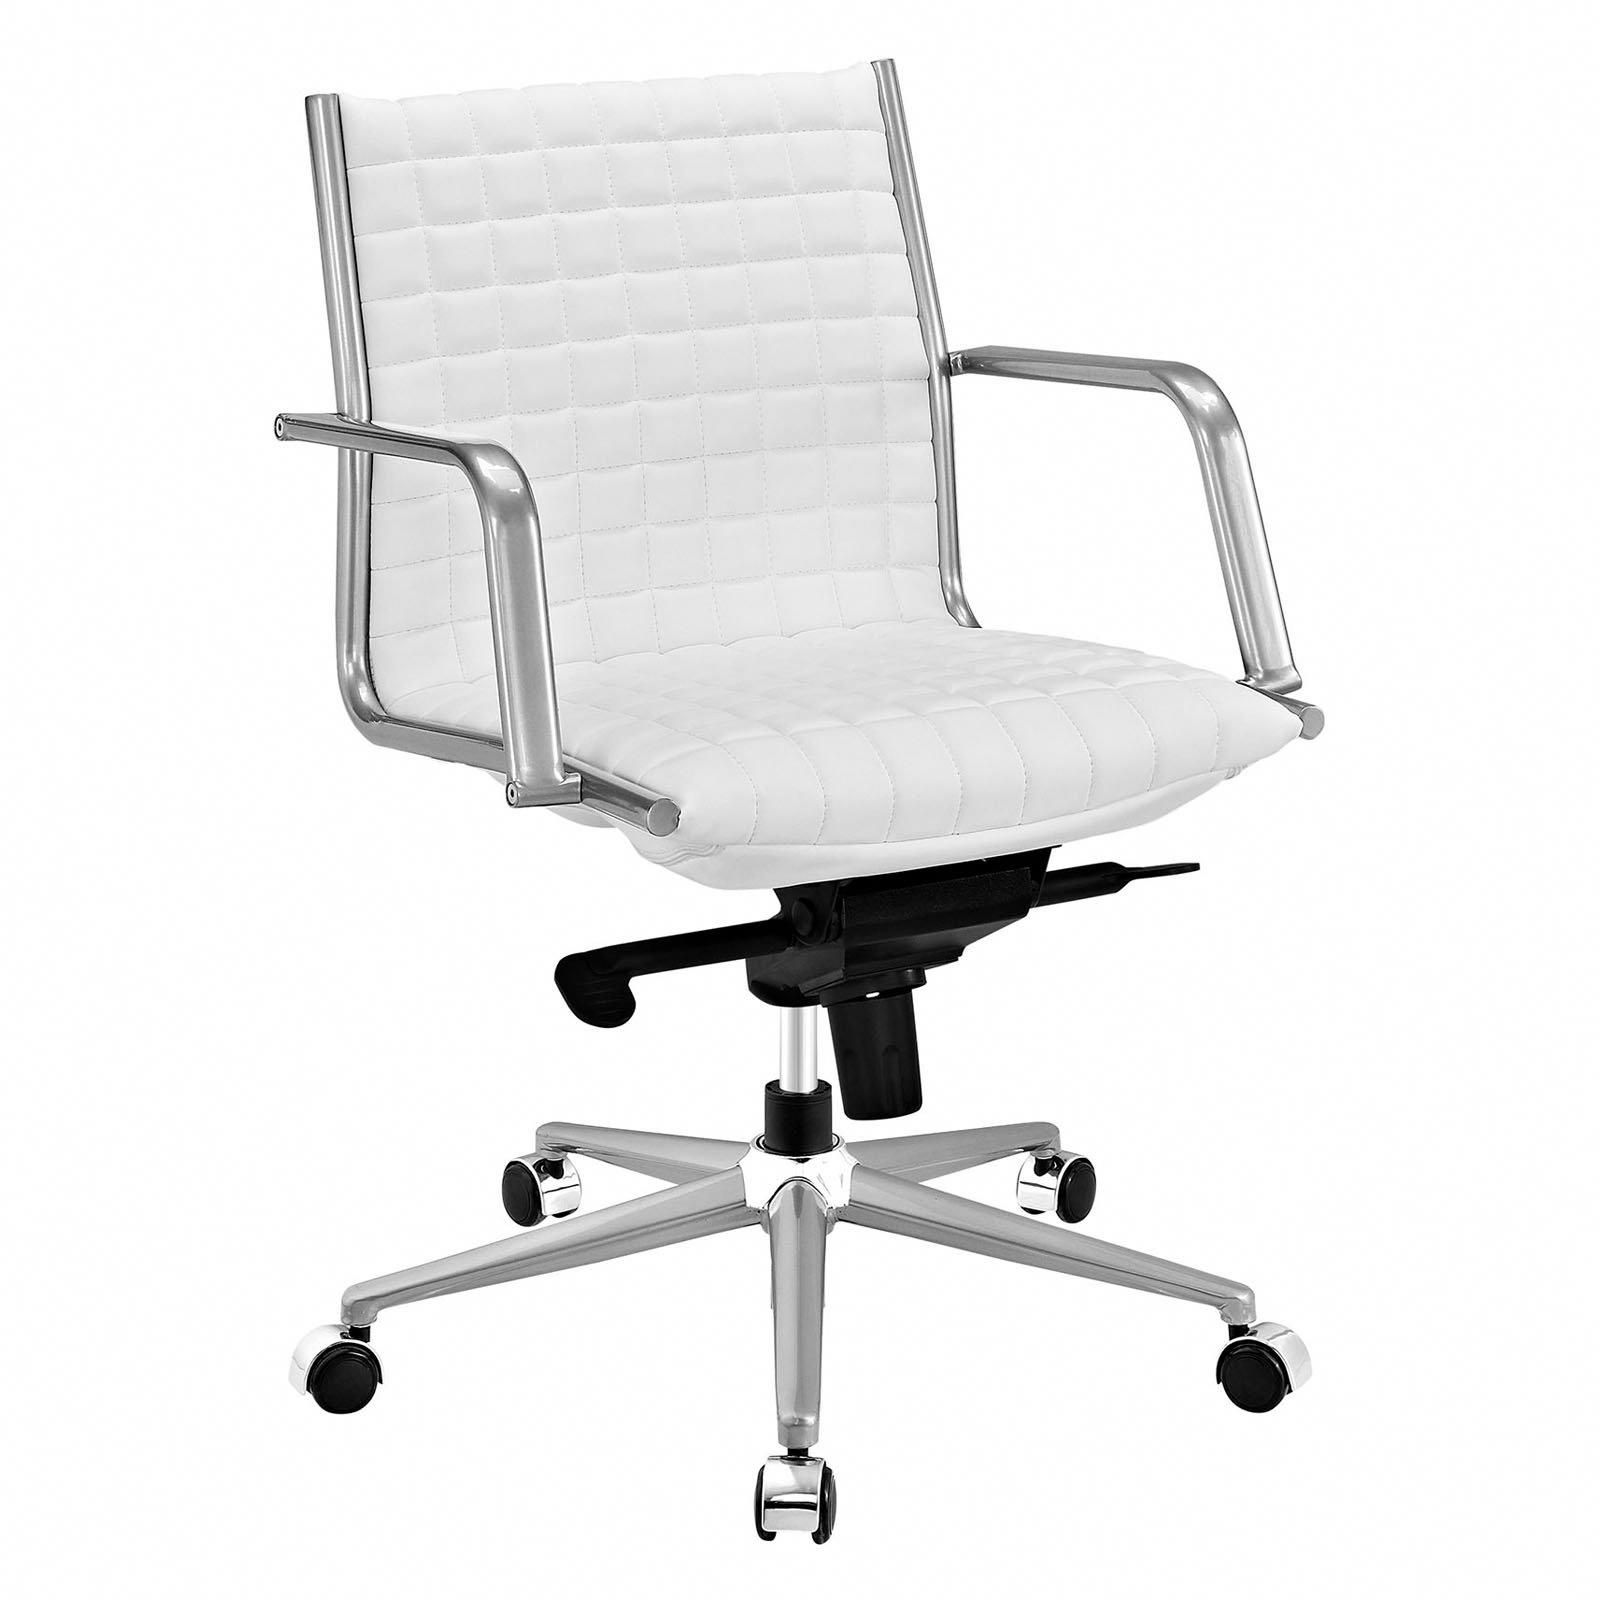 Oversized Overstuffed Chair Brownaccentchair Best Office Chair Office Chairs Australia Modern Office Chair